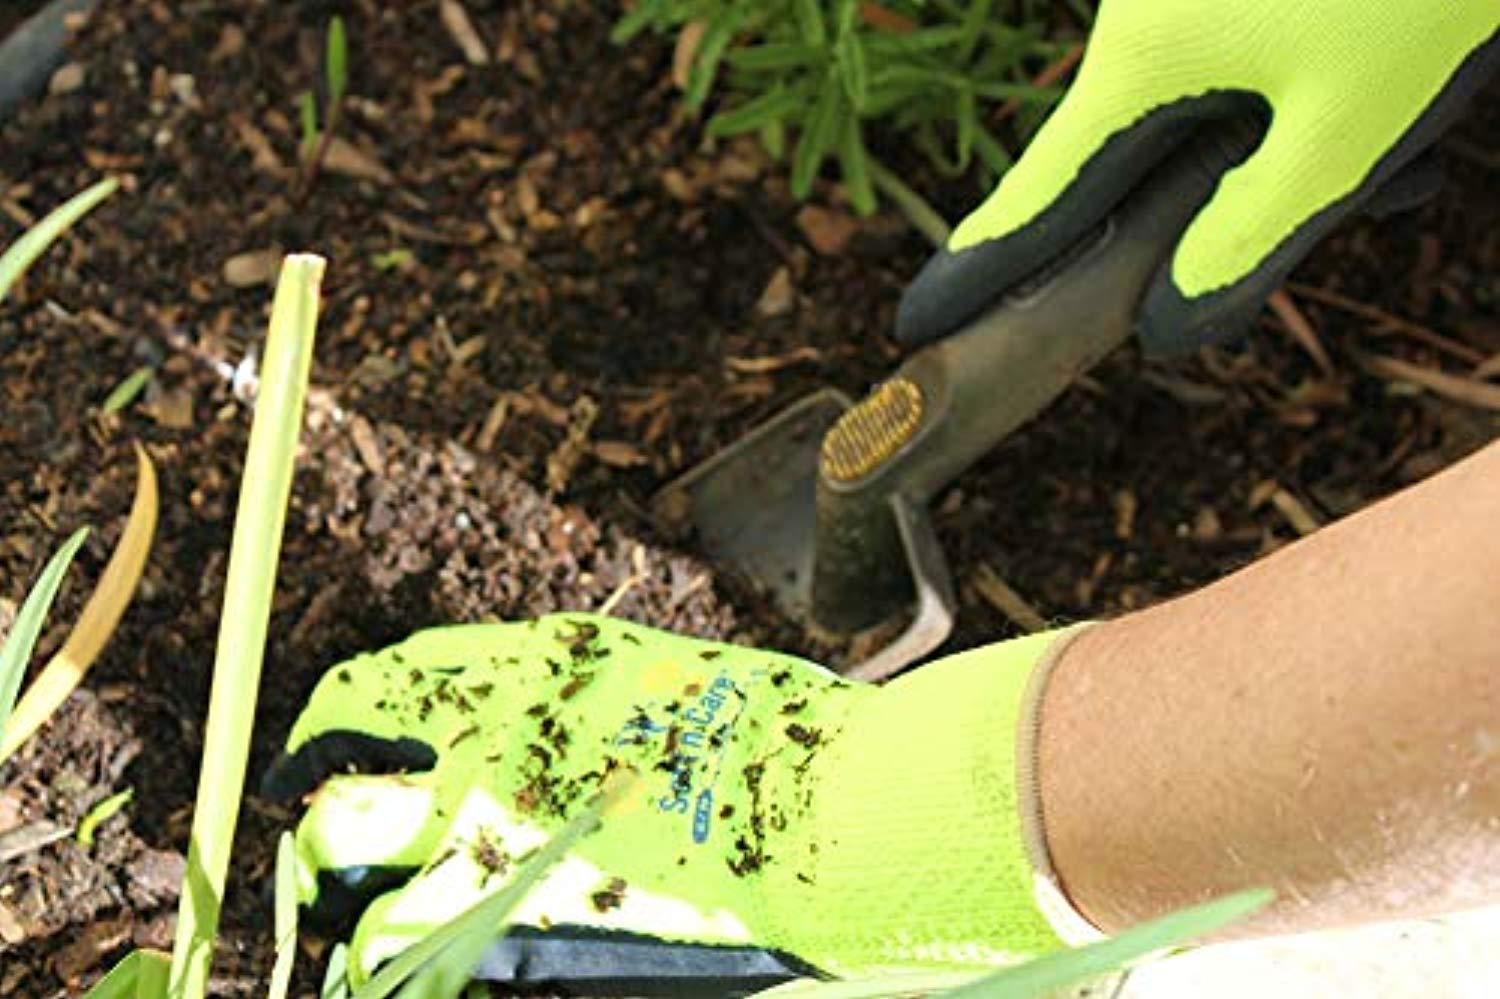 Own wishes Gardening Tools - Falcon Gloves and Pruners